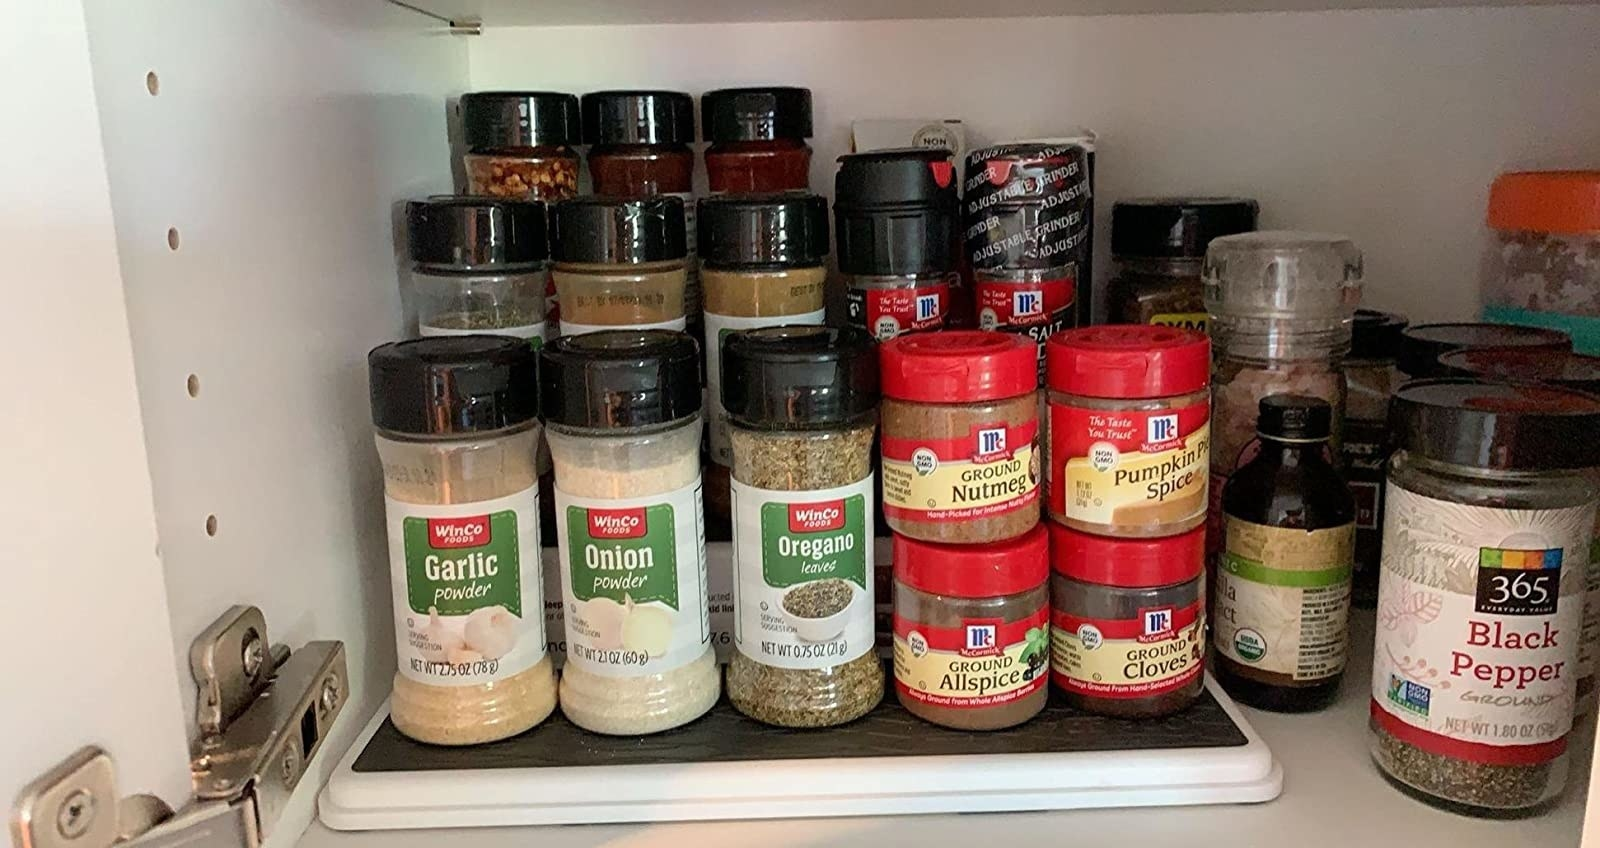 A reviewer's photo of the pantry organizer used with spices